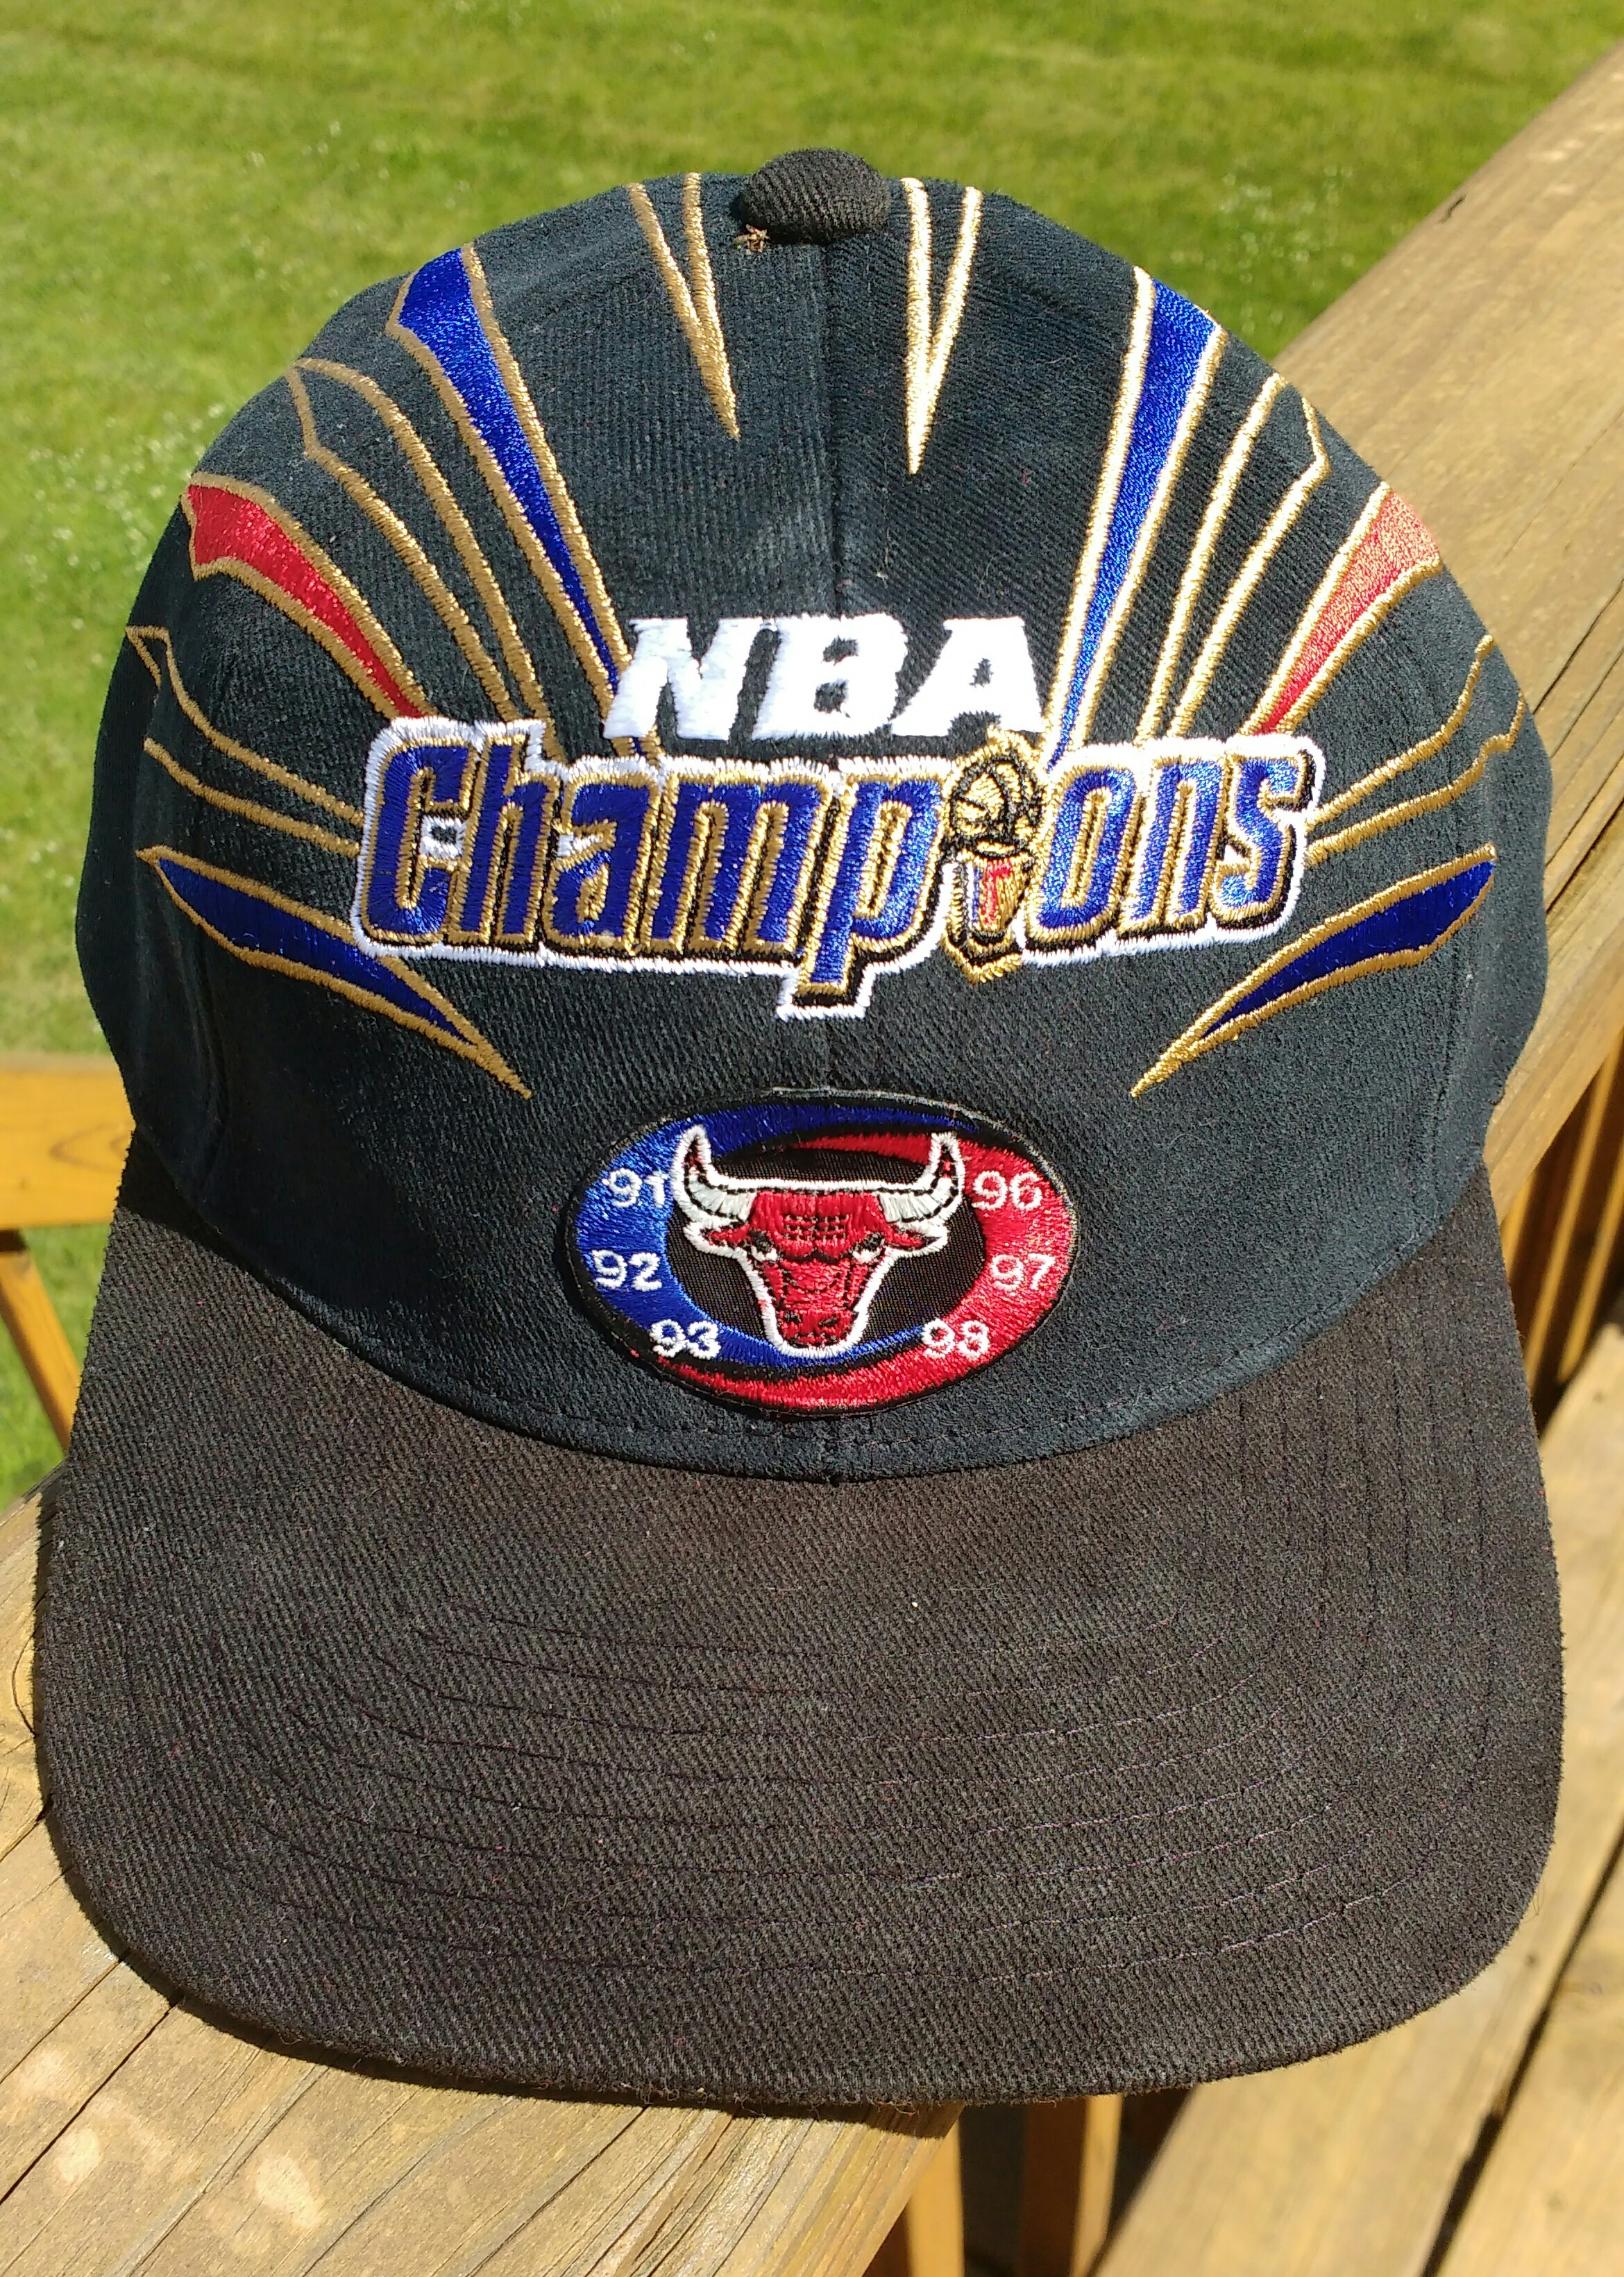 43333a7a527 ... uk vintage 1998 chicago bulls championship hat by starter thumbnail 1  5aa37 1d84b